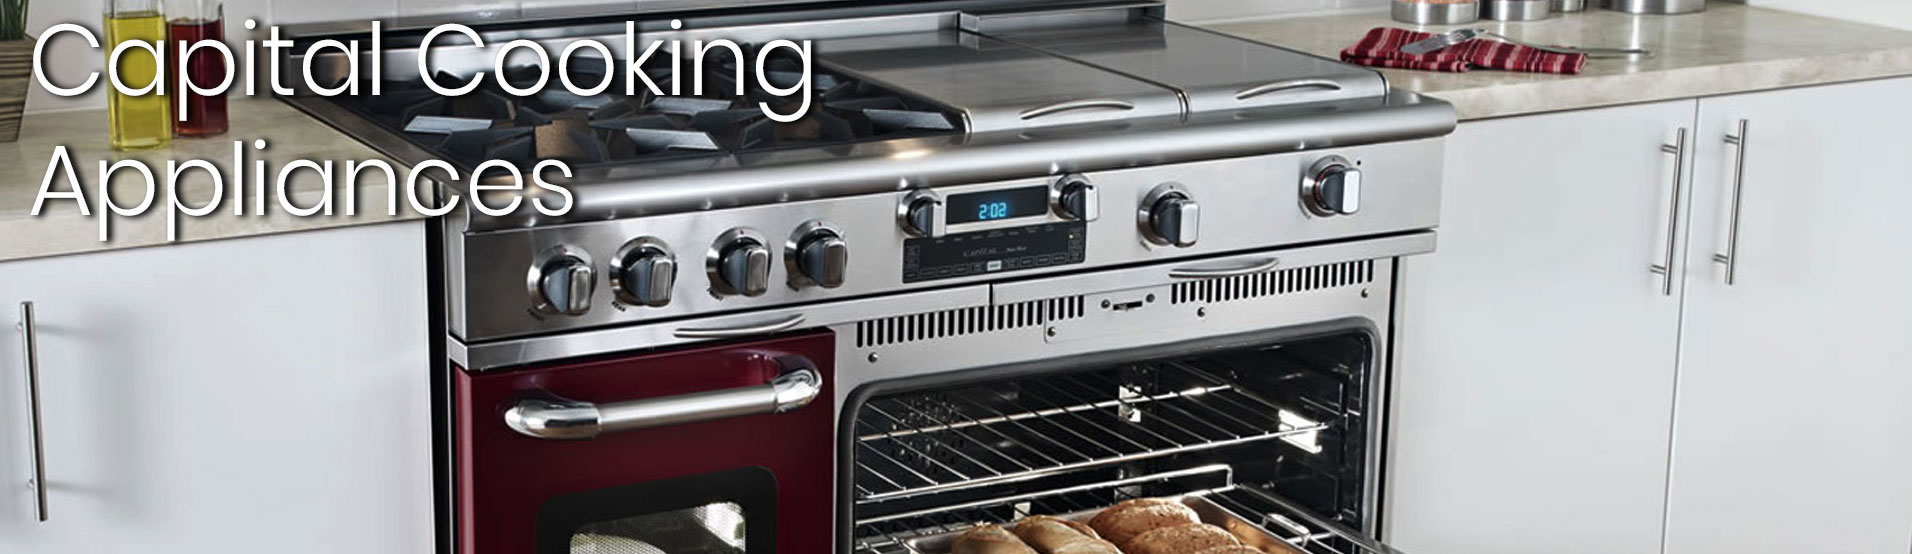 Custon Color Capital Cooking Appliances from Appliances Connection